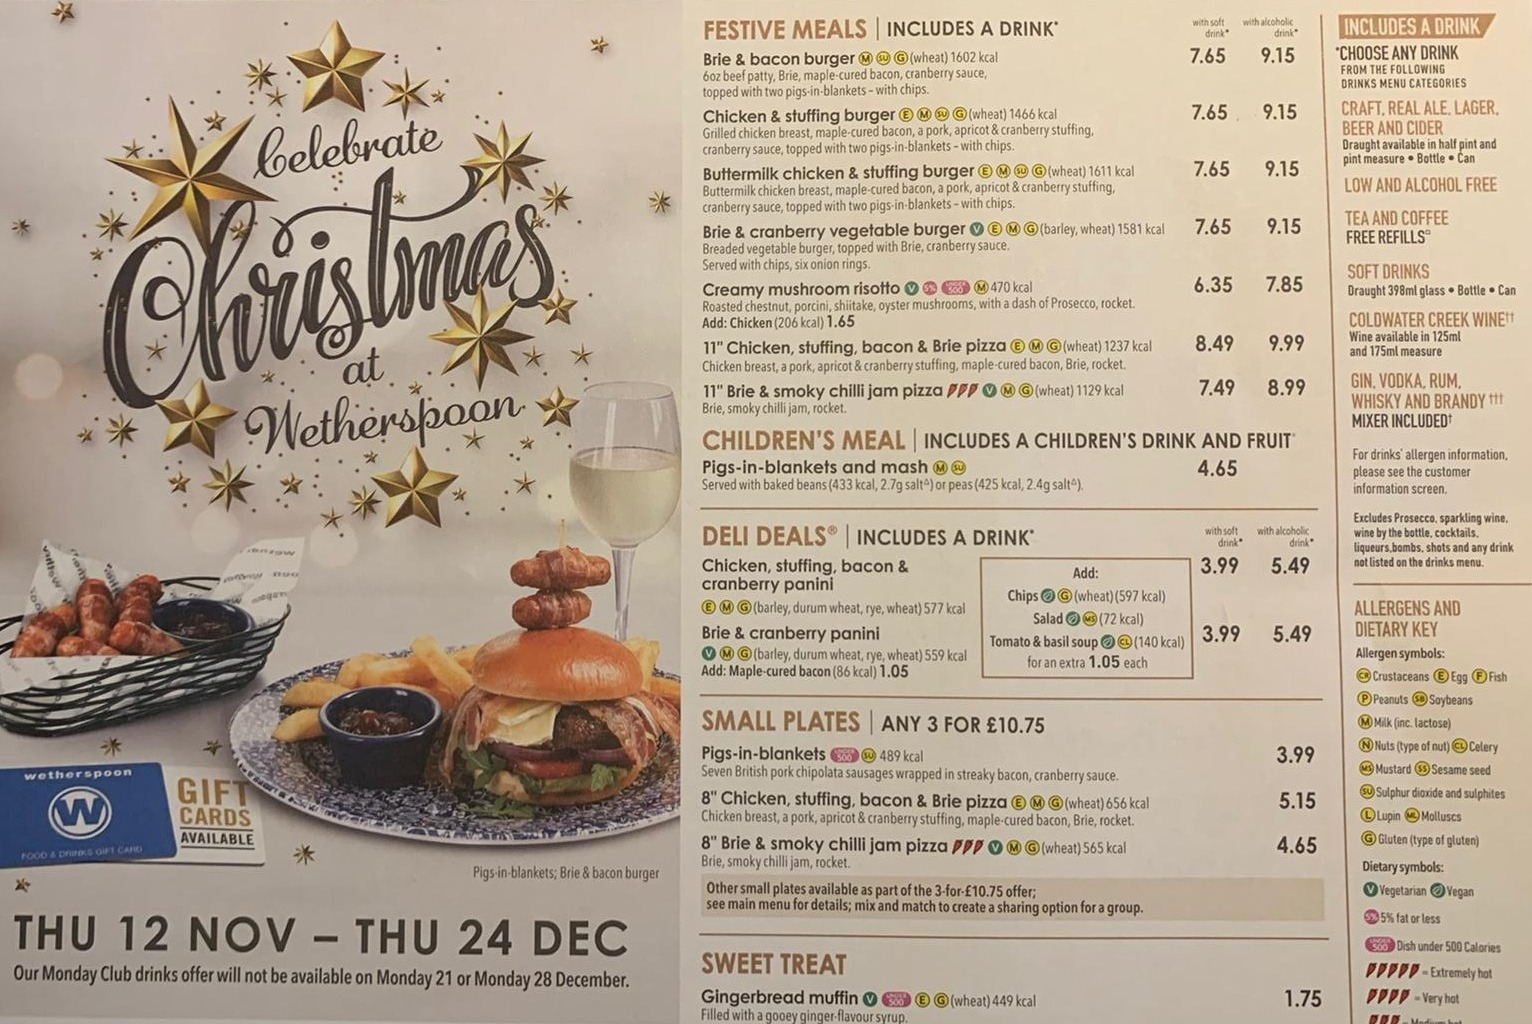 Wetherspoon is 'stuffing Christmas' by shunning traditional festive dinners for burgers, risotto, paninis and pizzas